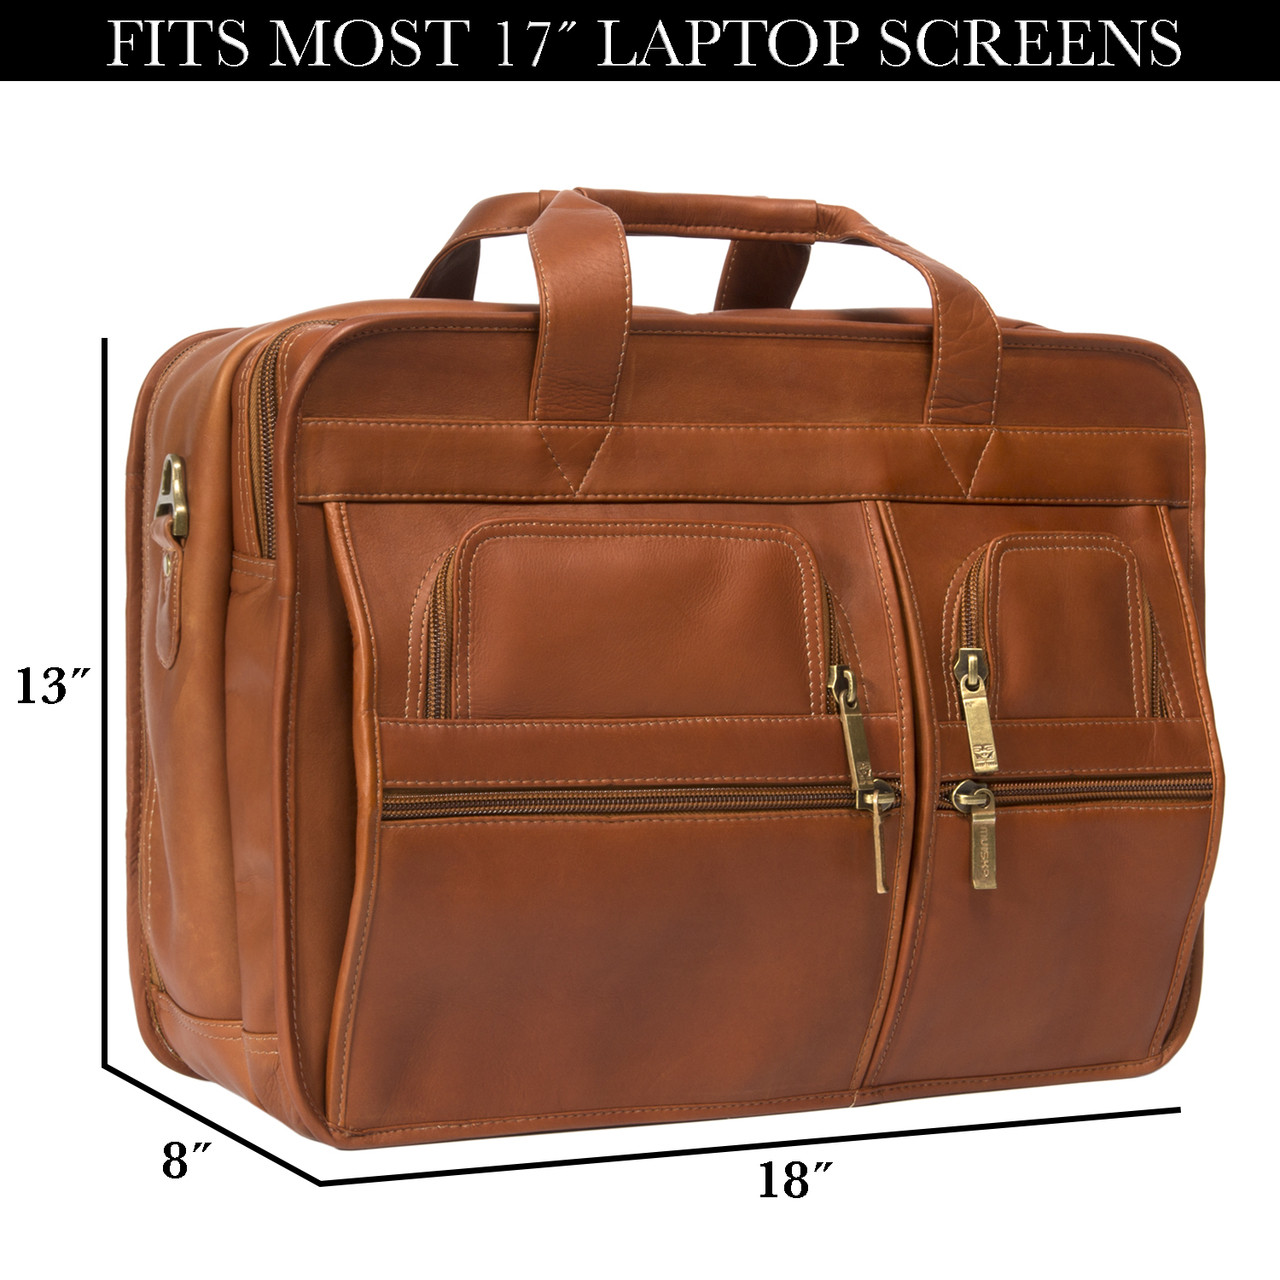 Muiska - New York - Double Compartment Leather Briefcase fits even the largest 17-inch laptops